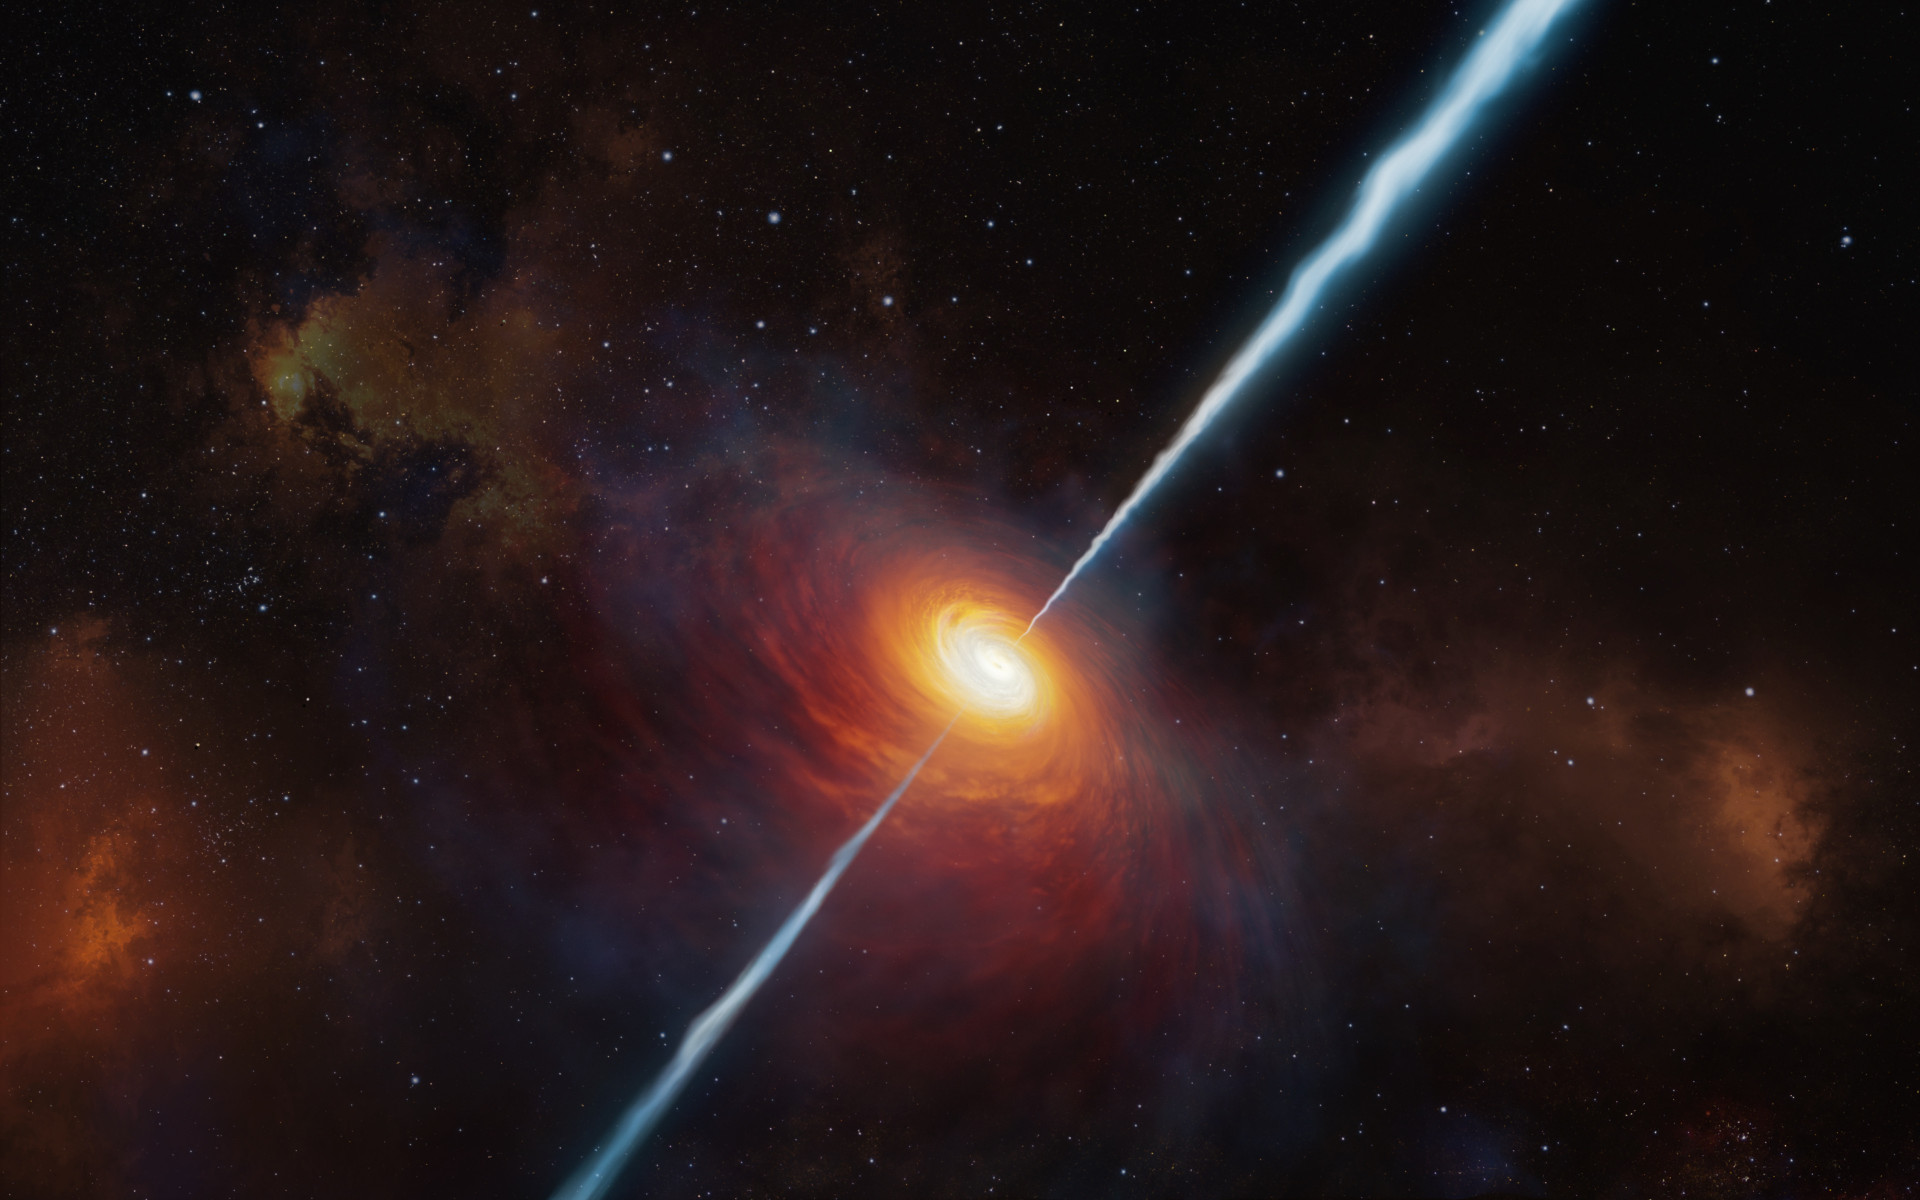 Distant quasar wallpaper 1920x1200